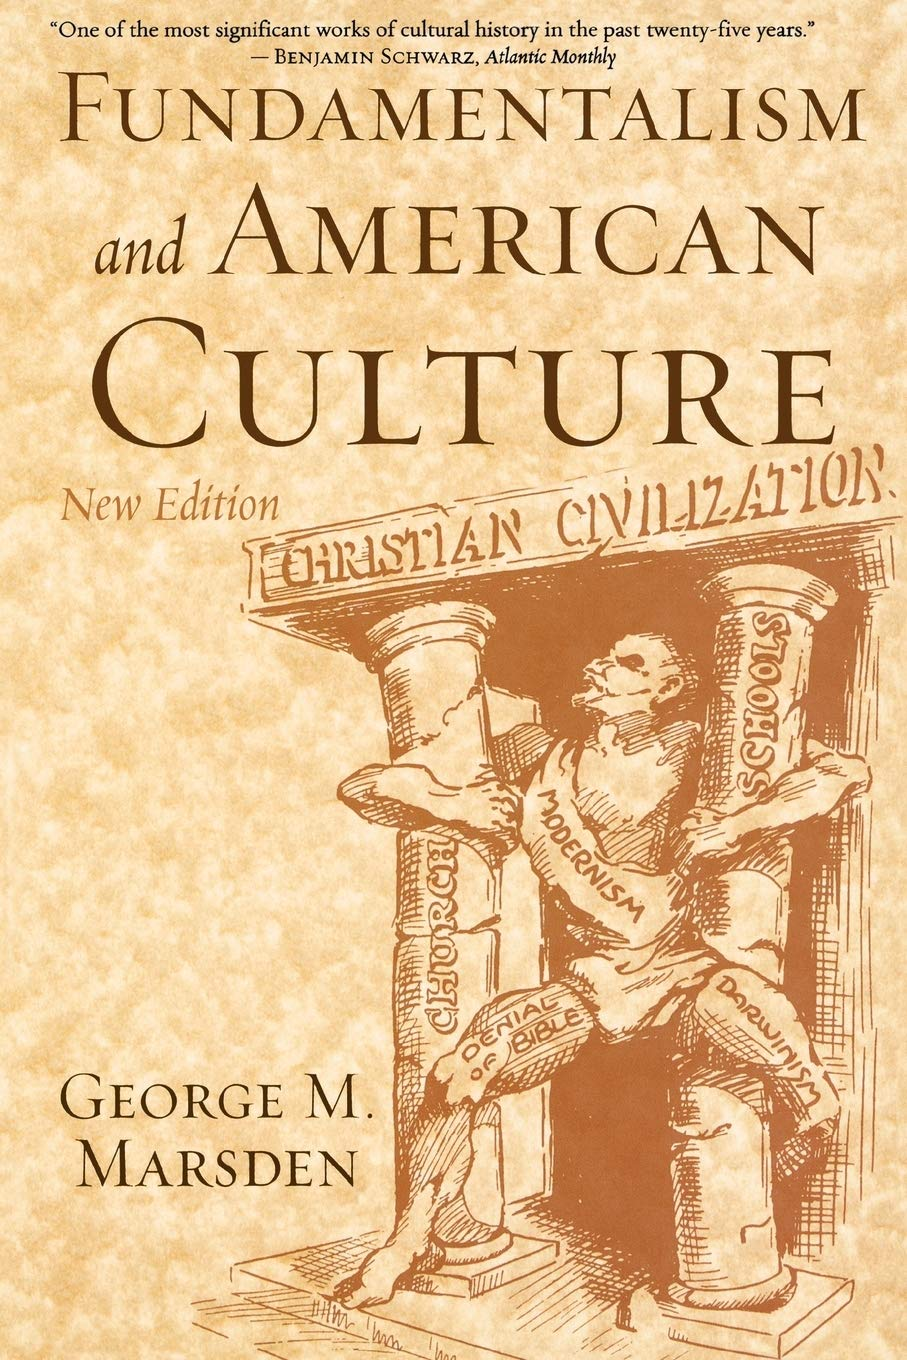 Fundamentalism And American Culture (New Edition)